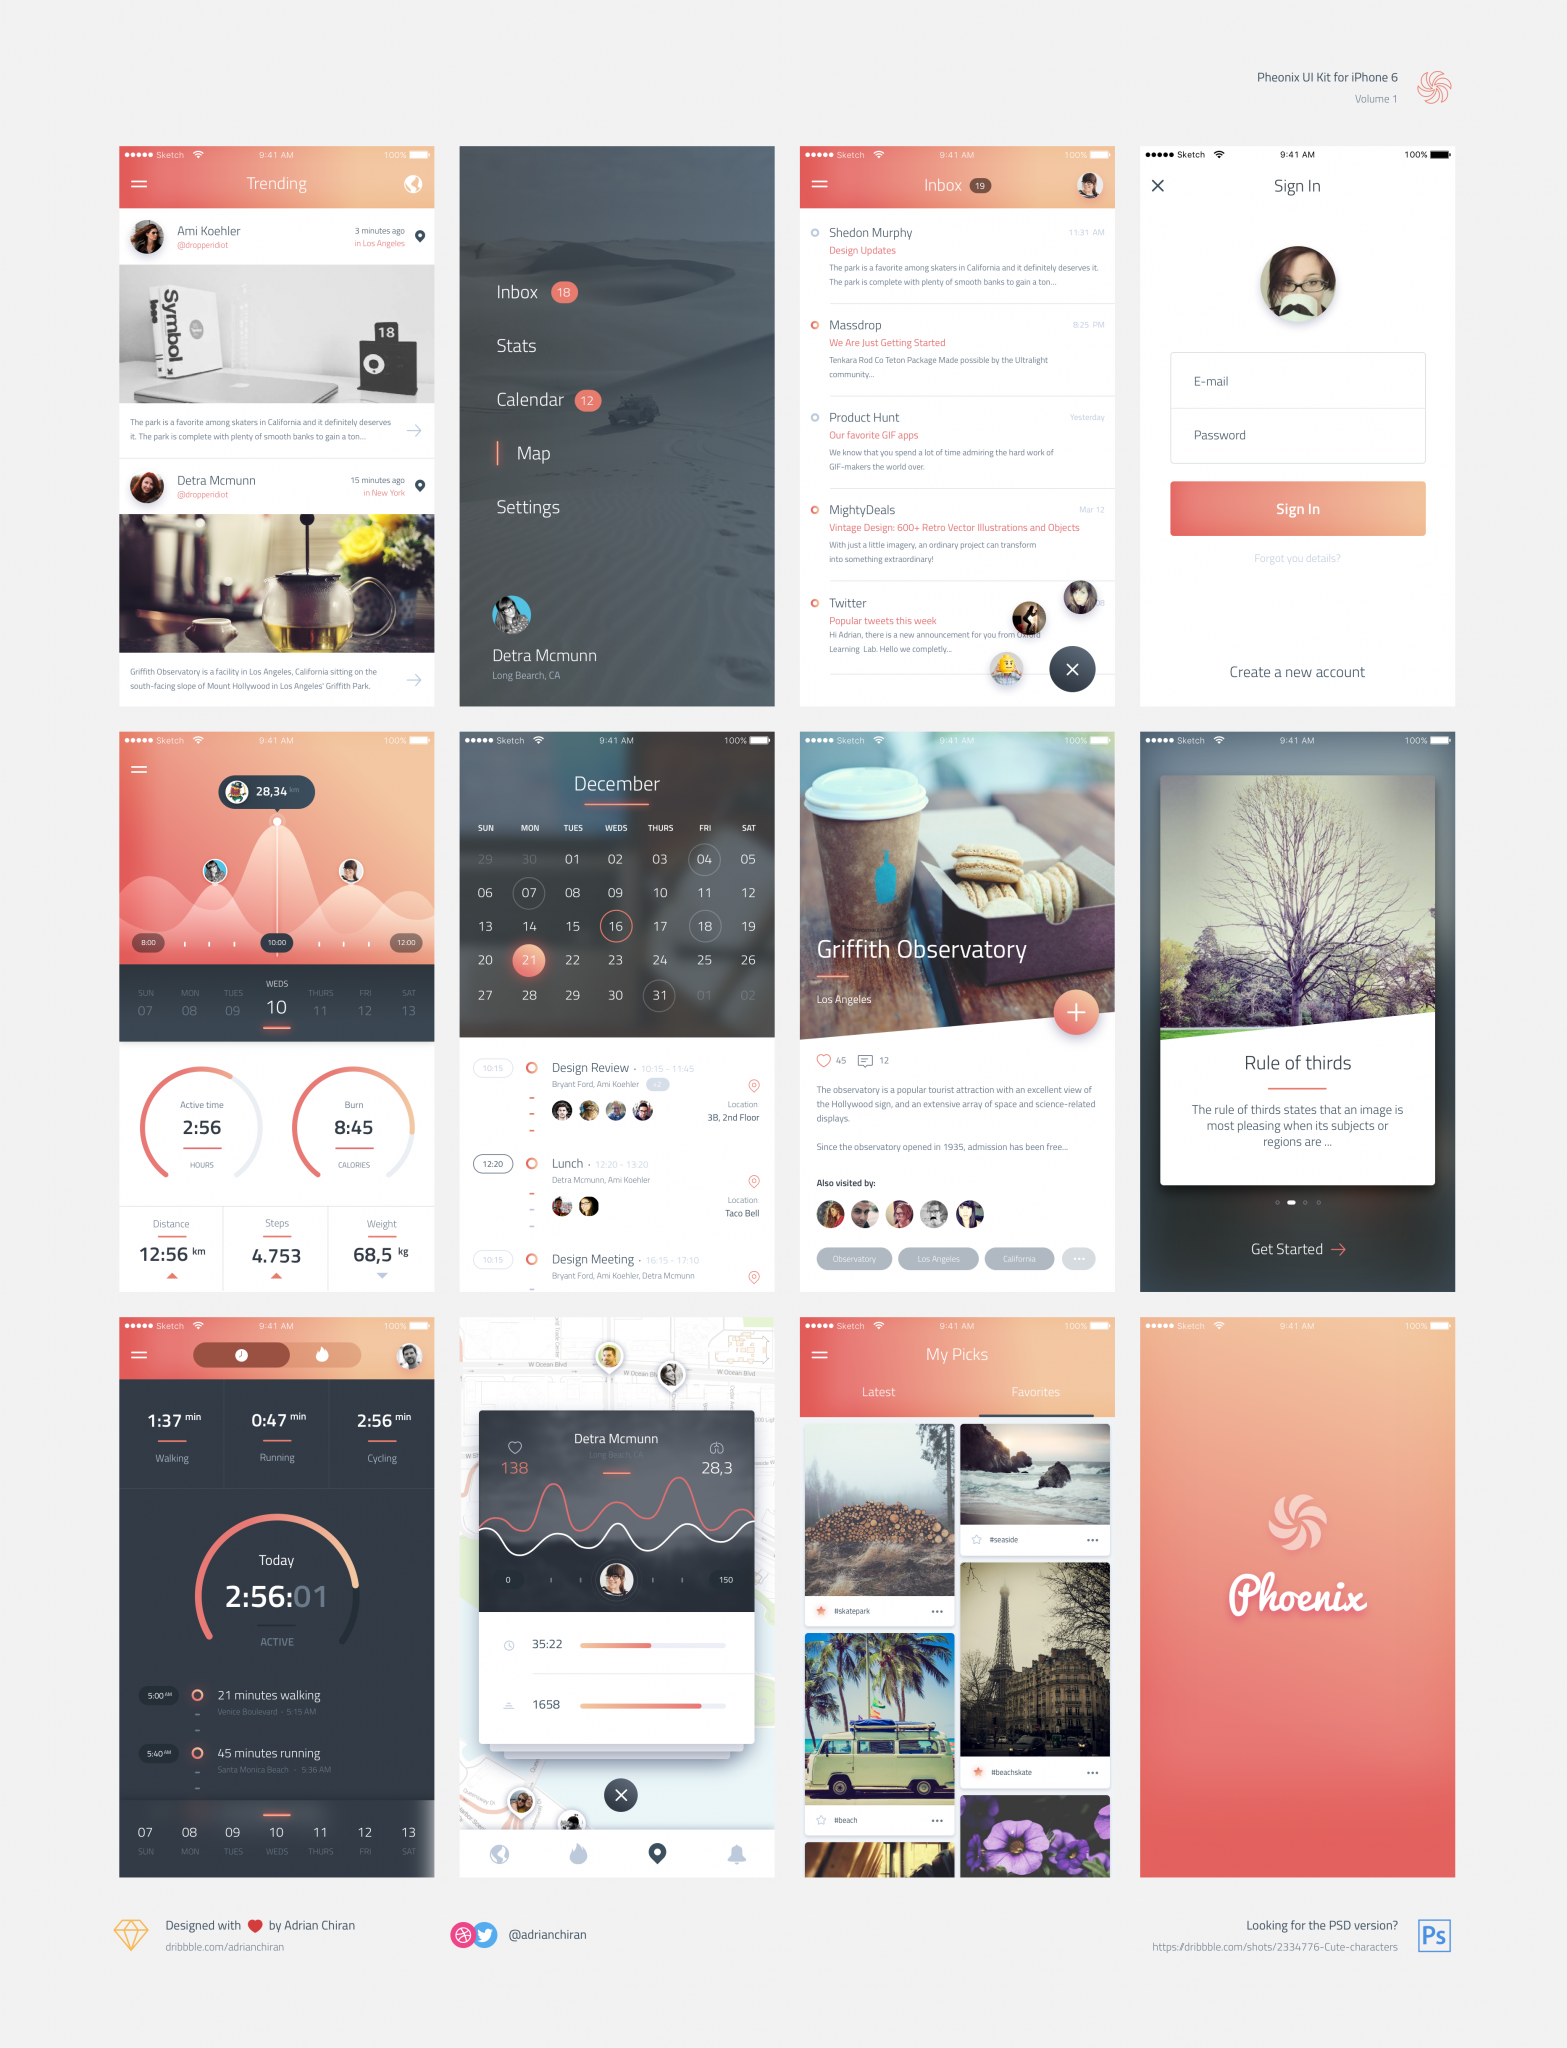 Spalsh screen App design Pheonix vol 1 ui kit toolbox